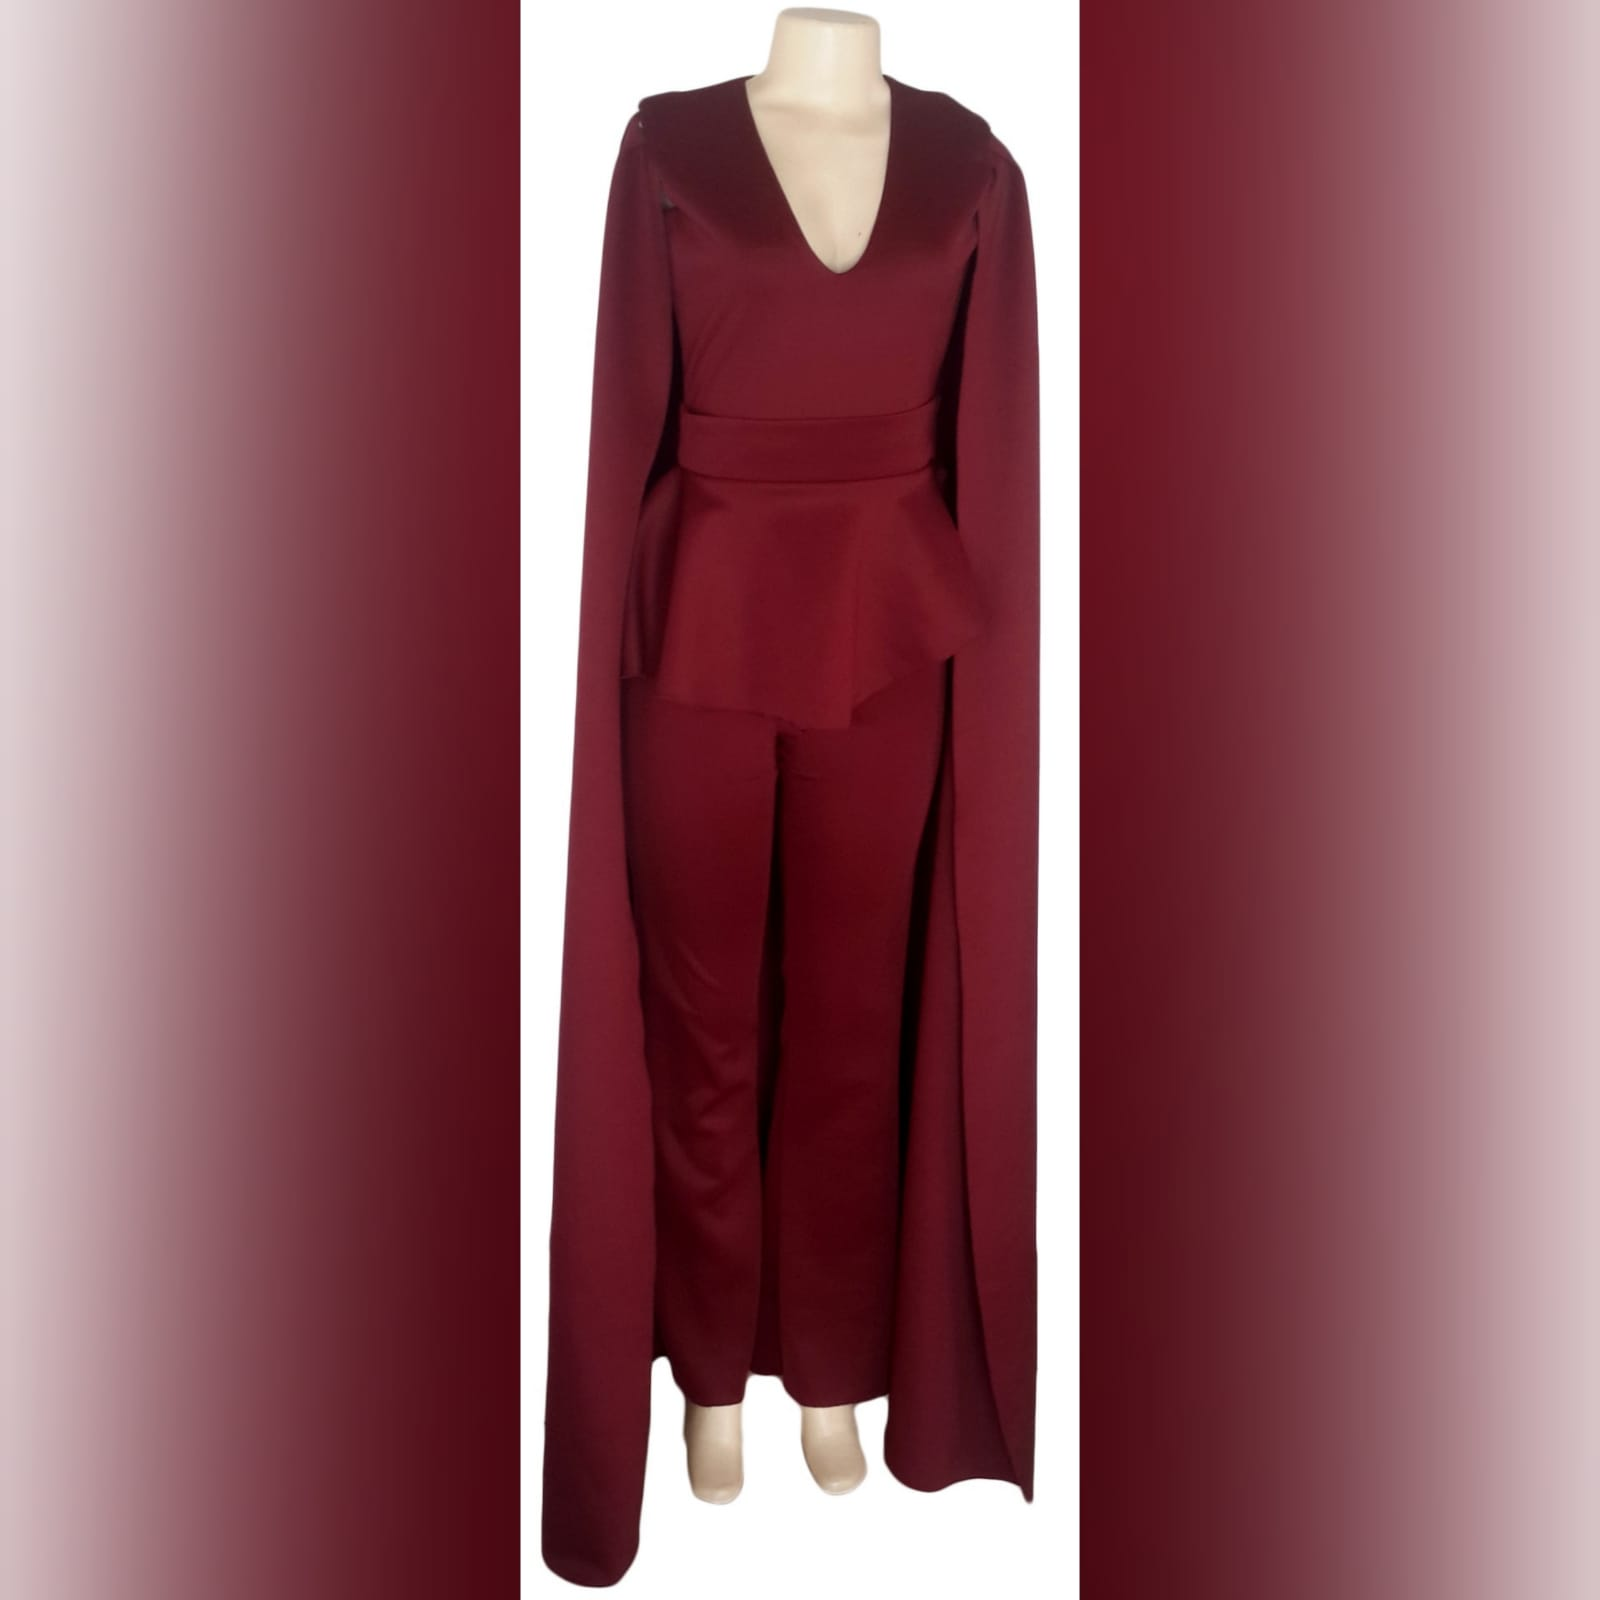 3 piece burgundy evening outfit 2 3 piece burgundy evening outfit. Bodysuit with a v neckline, with a removable peplum belt. With a removable shoulder cape